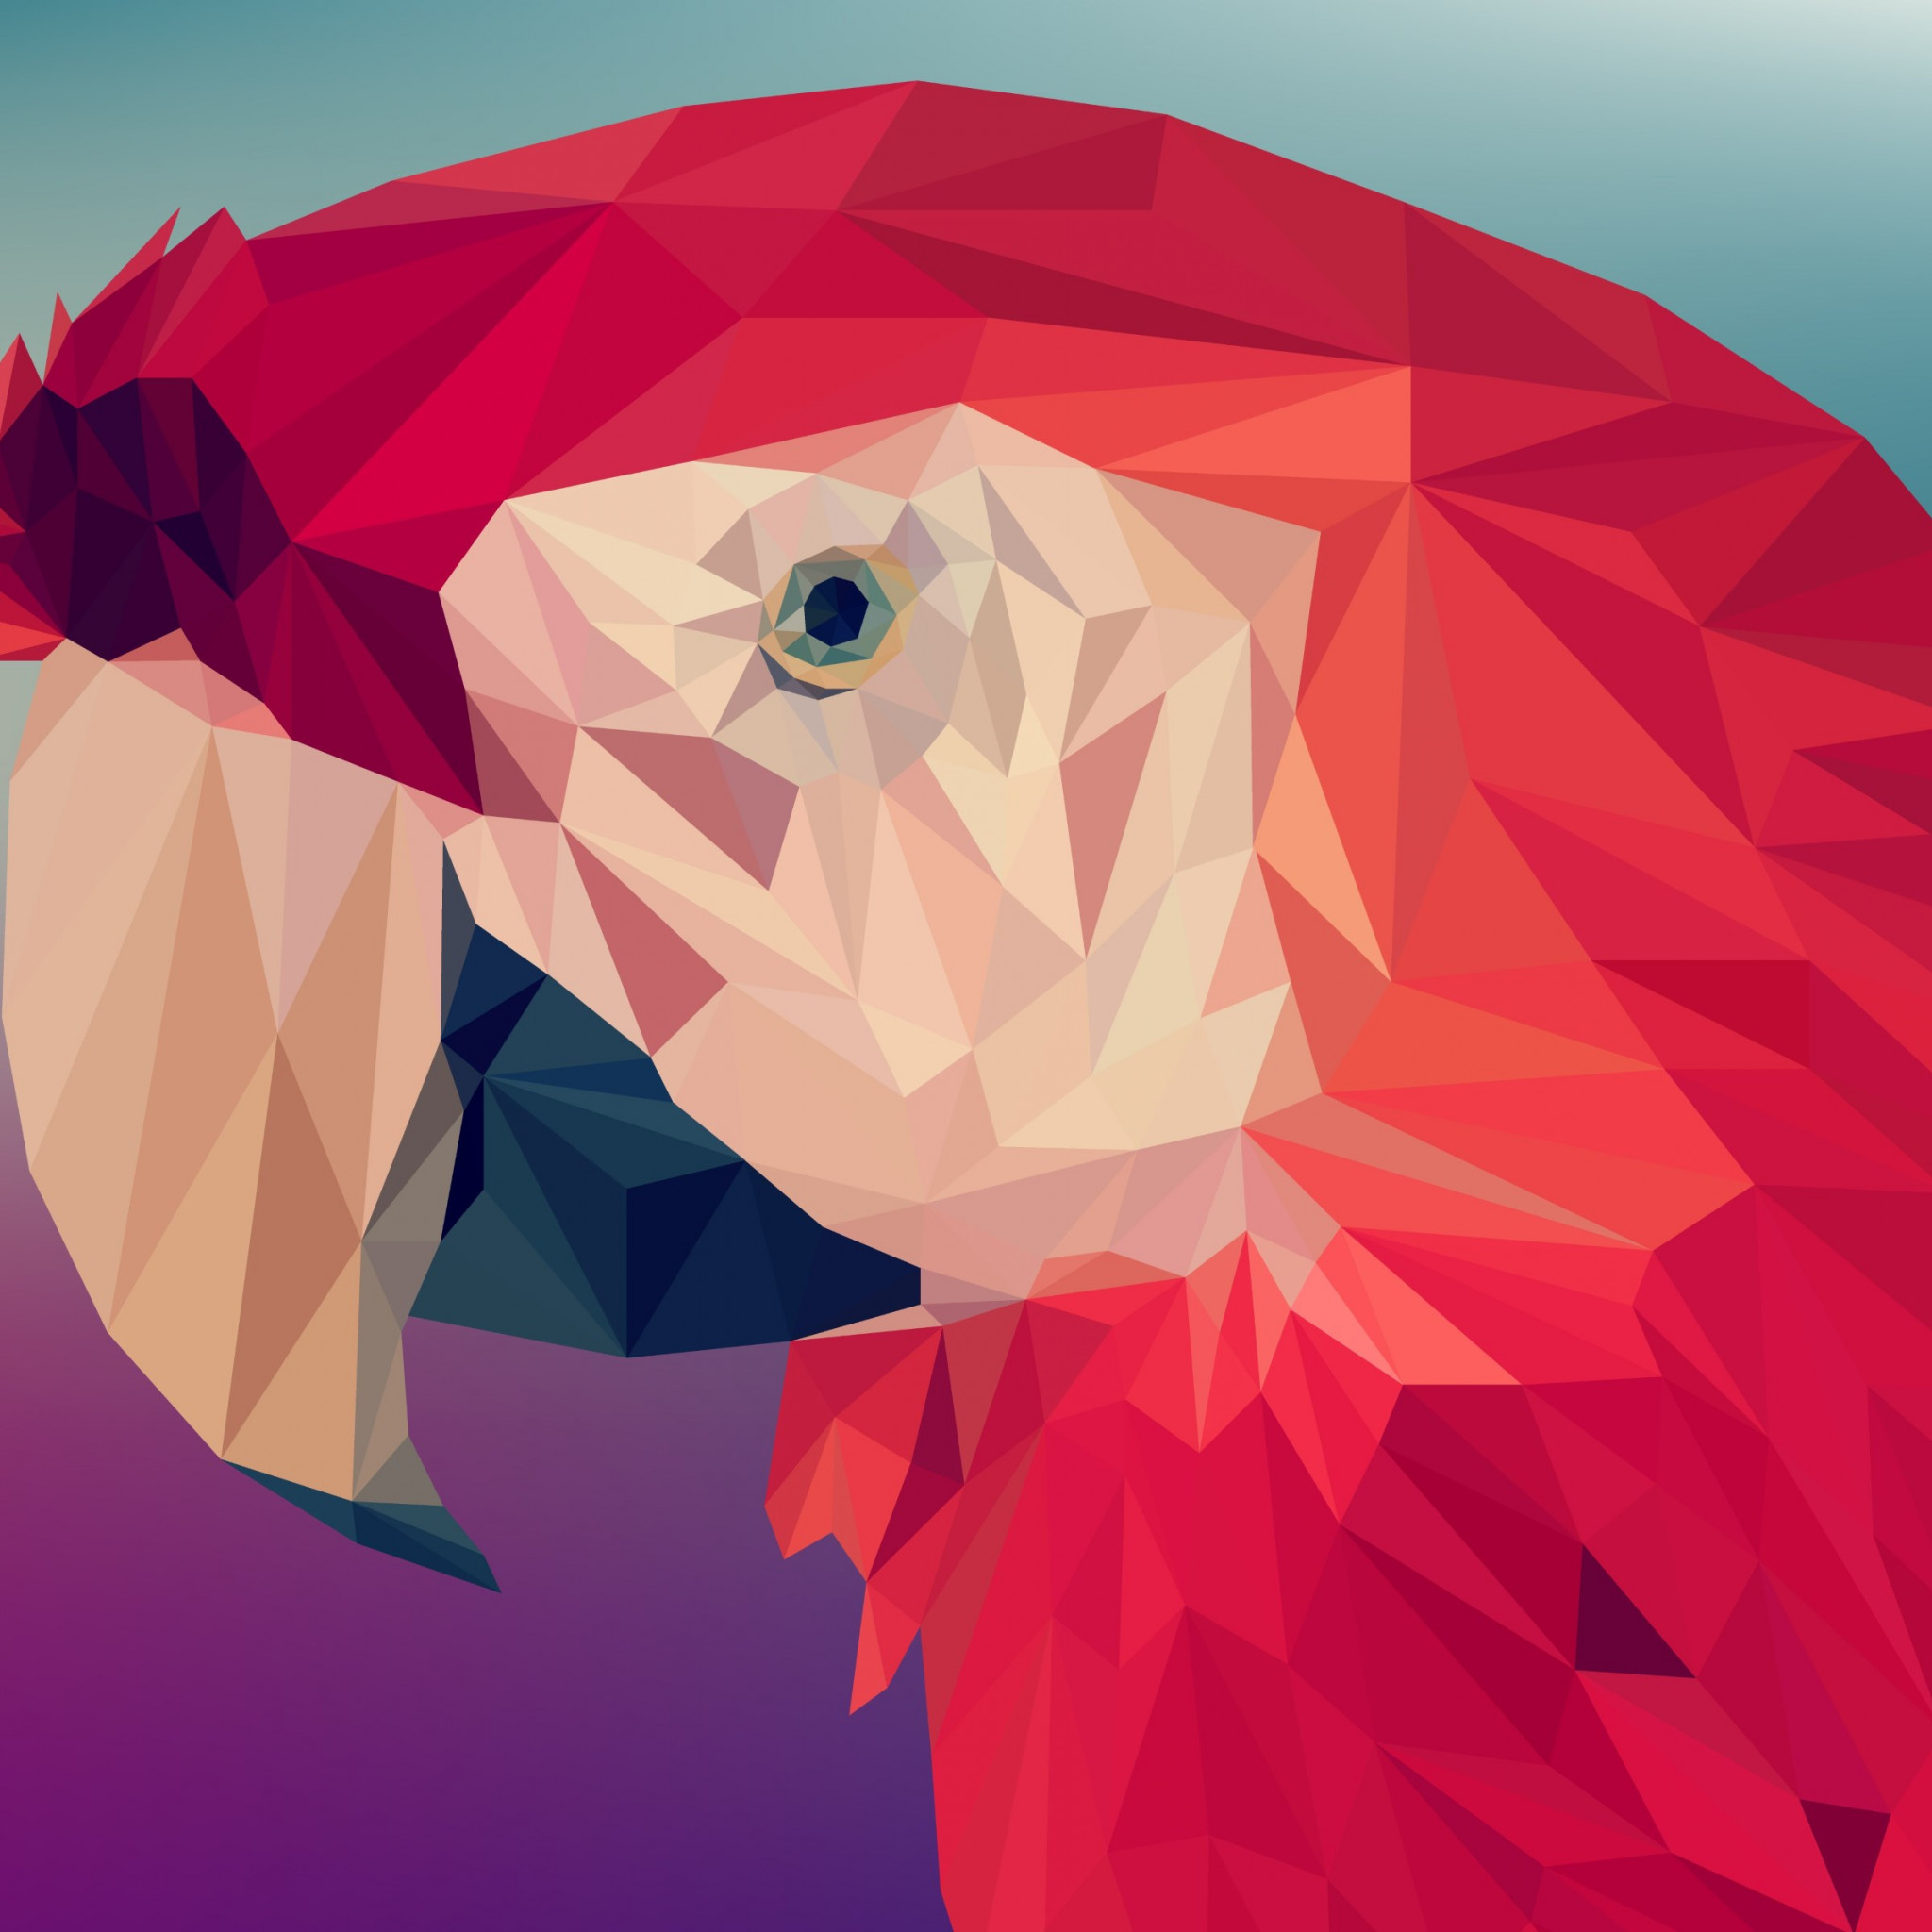 Low poly art: Red parrot wallpaper 2048x2048